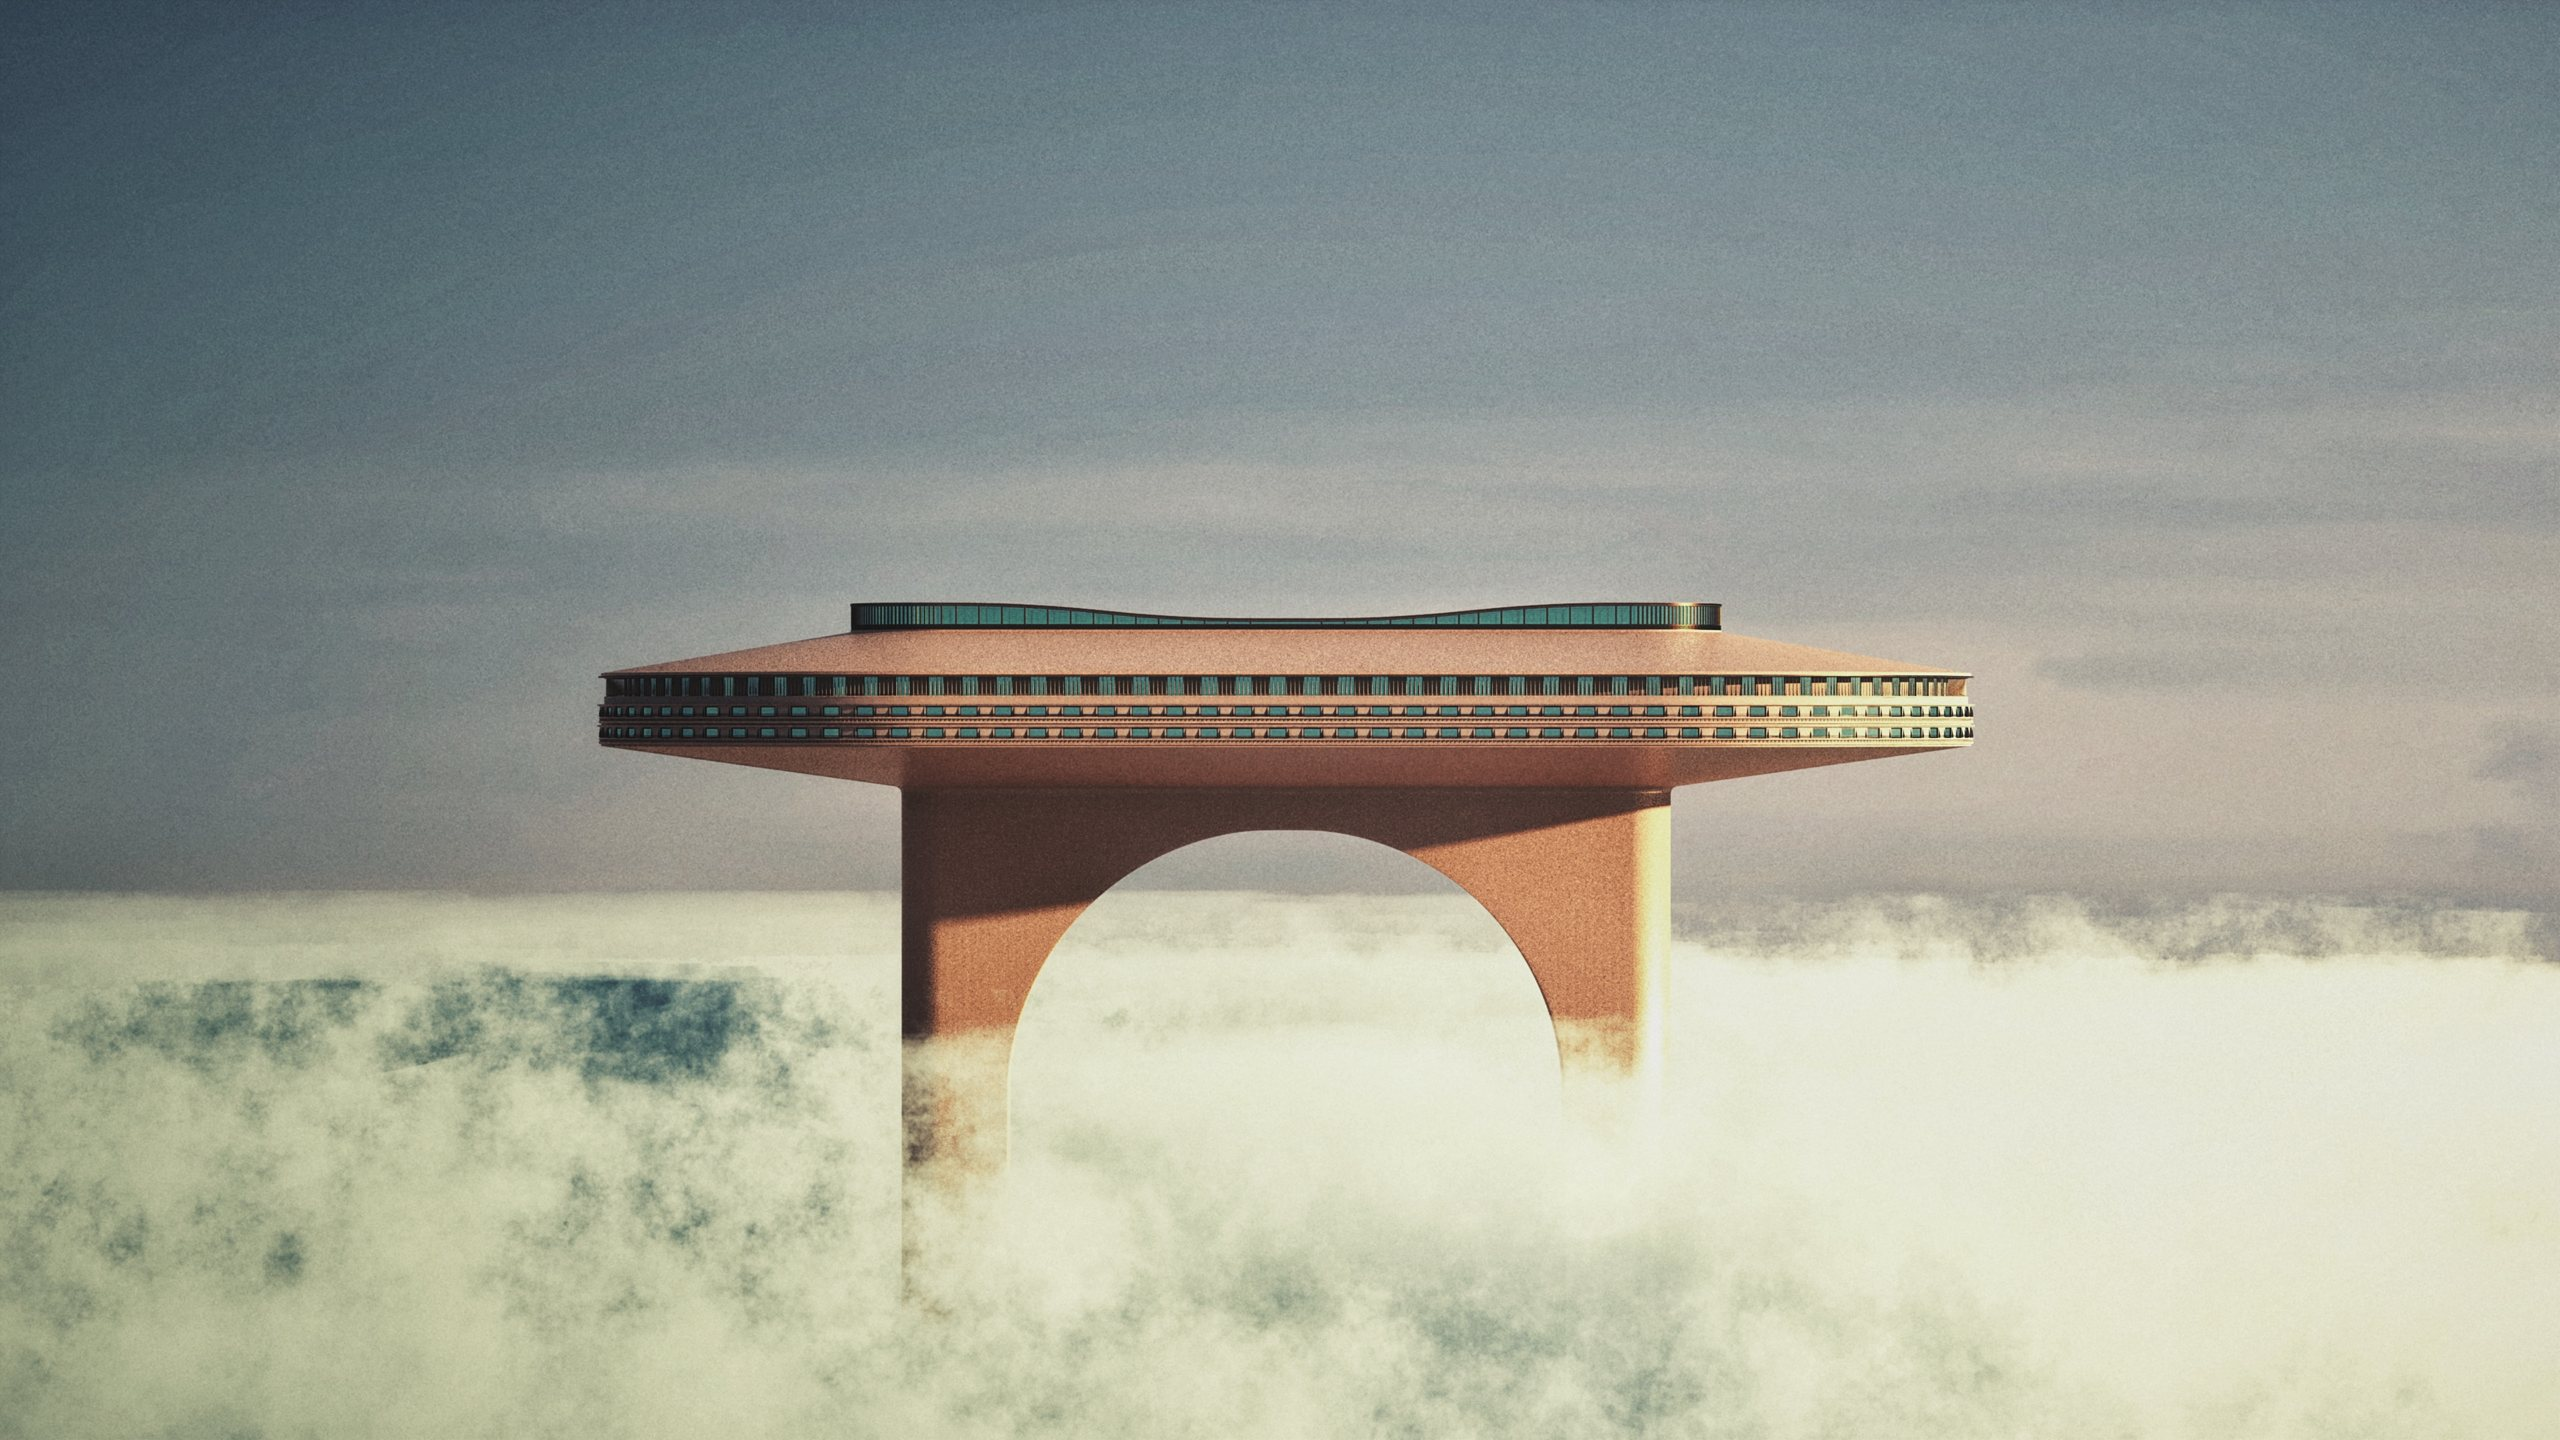 3D rendering of surreal architecture